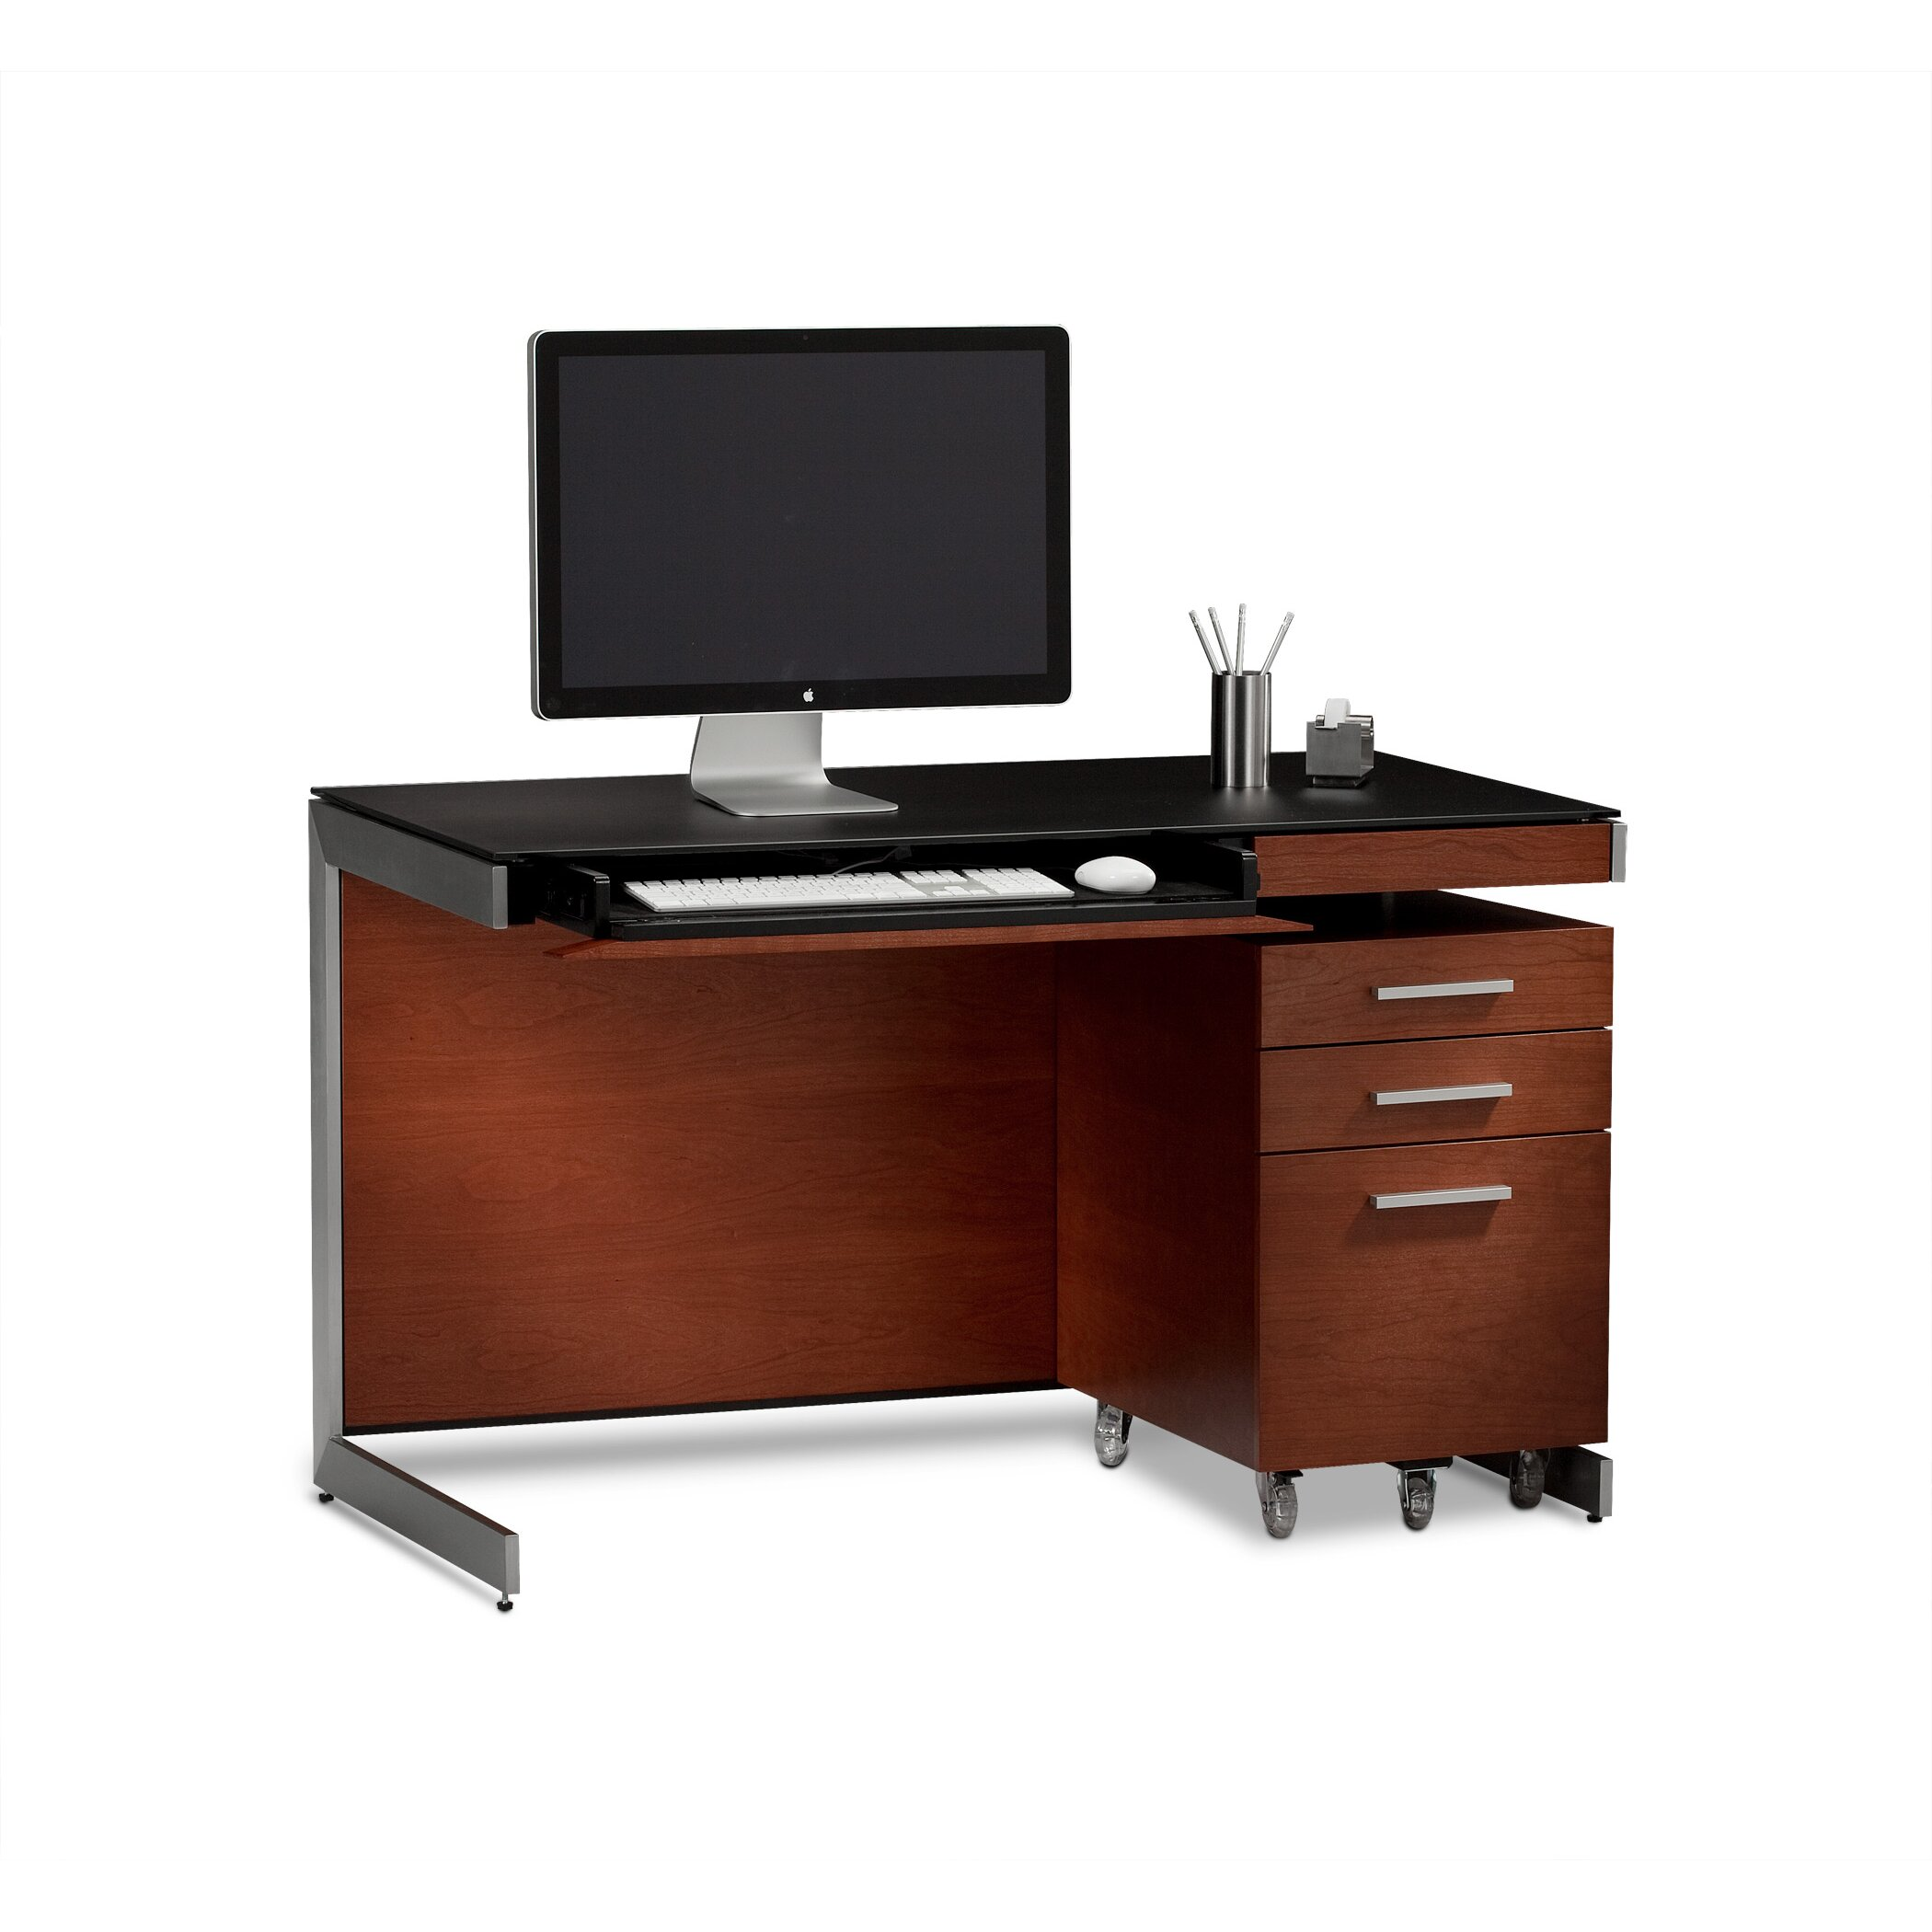 Bdi Usa Sequel Compact Desk Reviews Wayfair